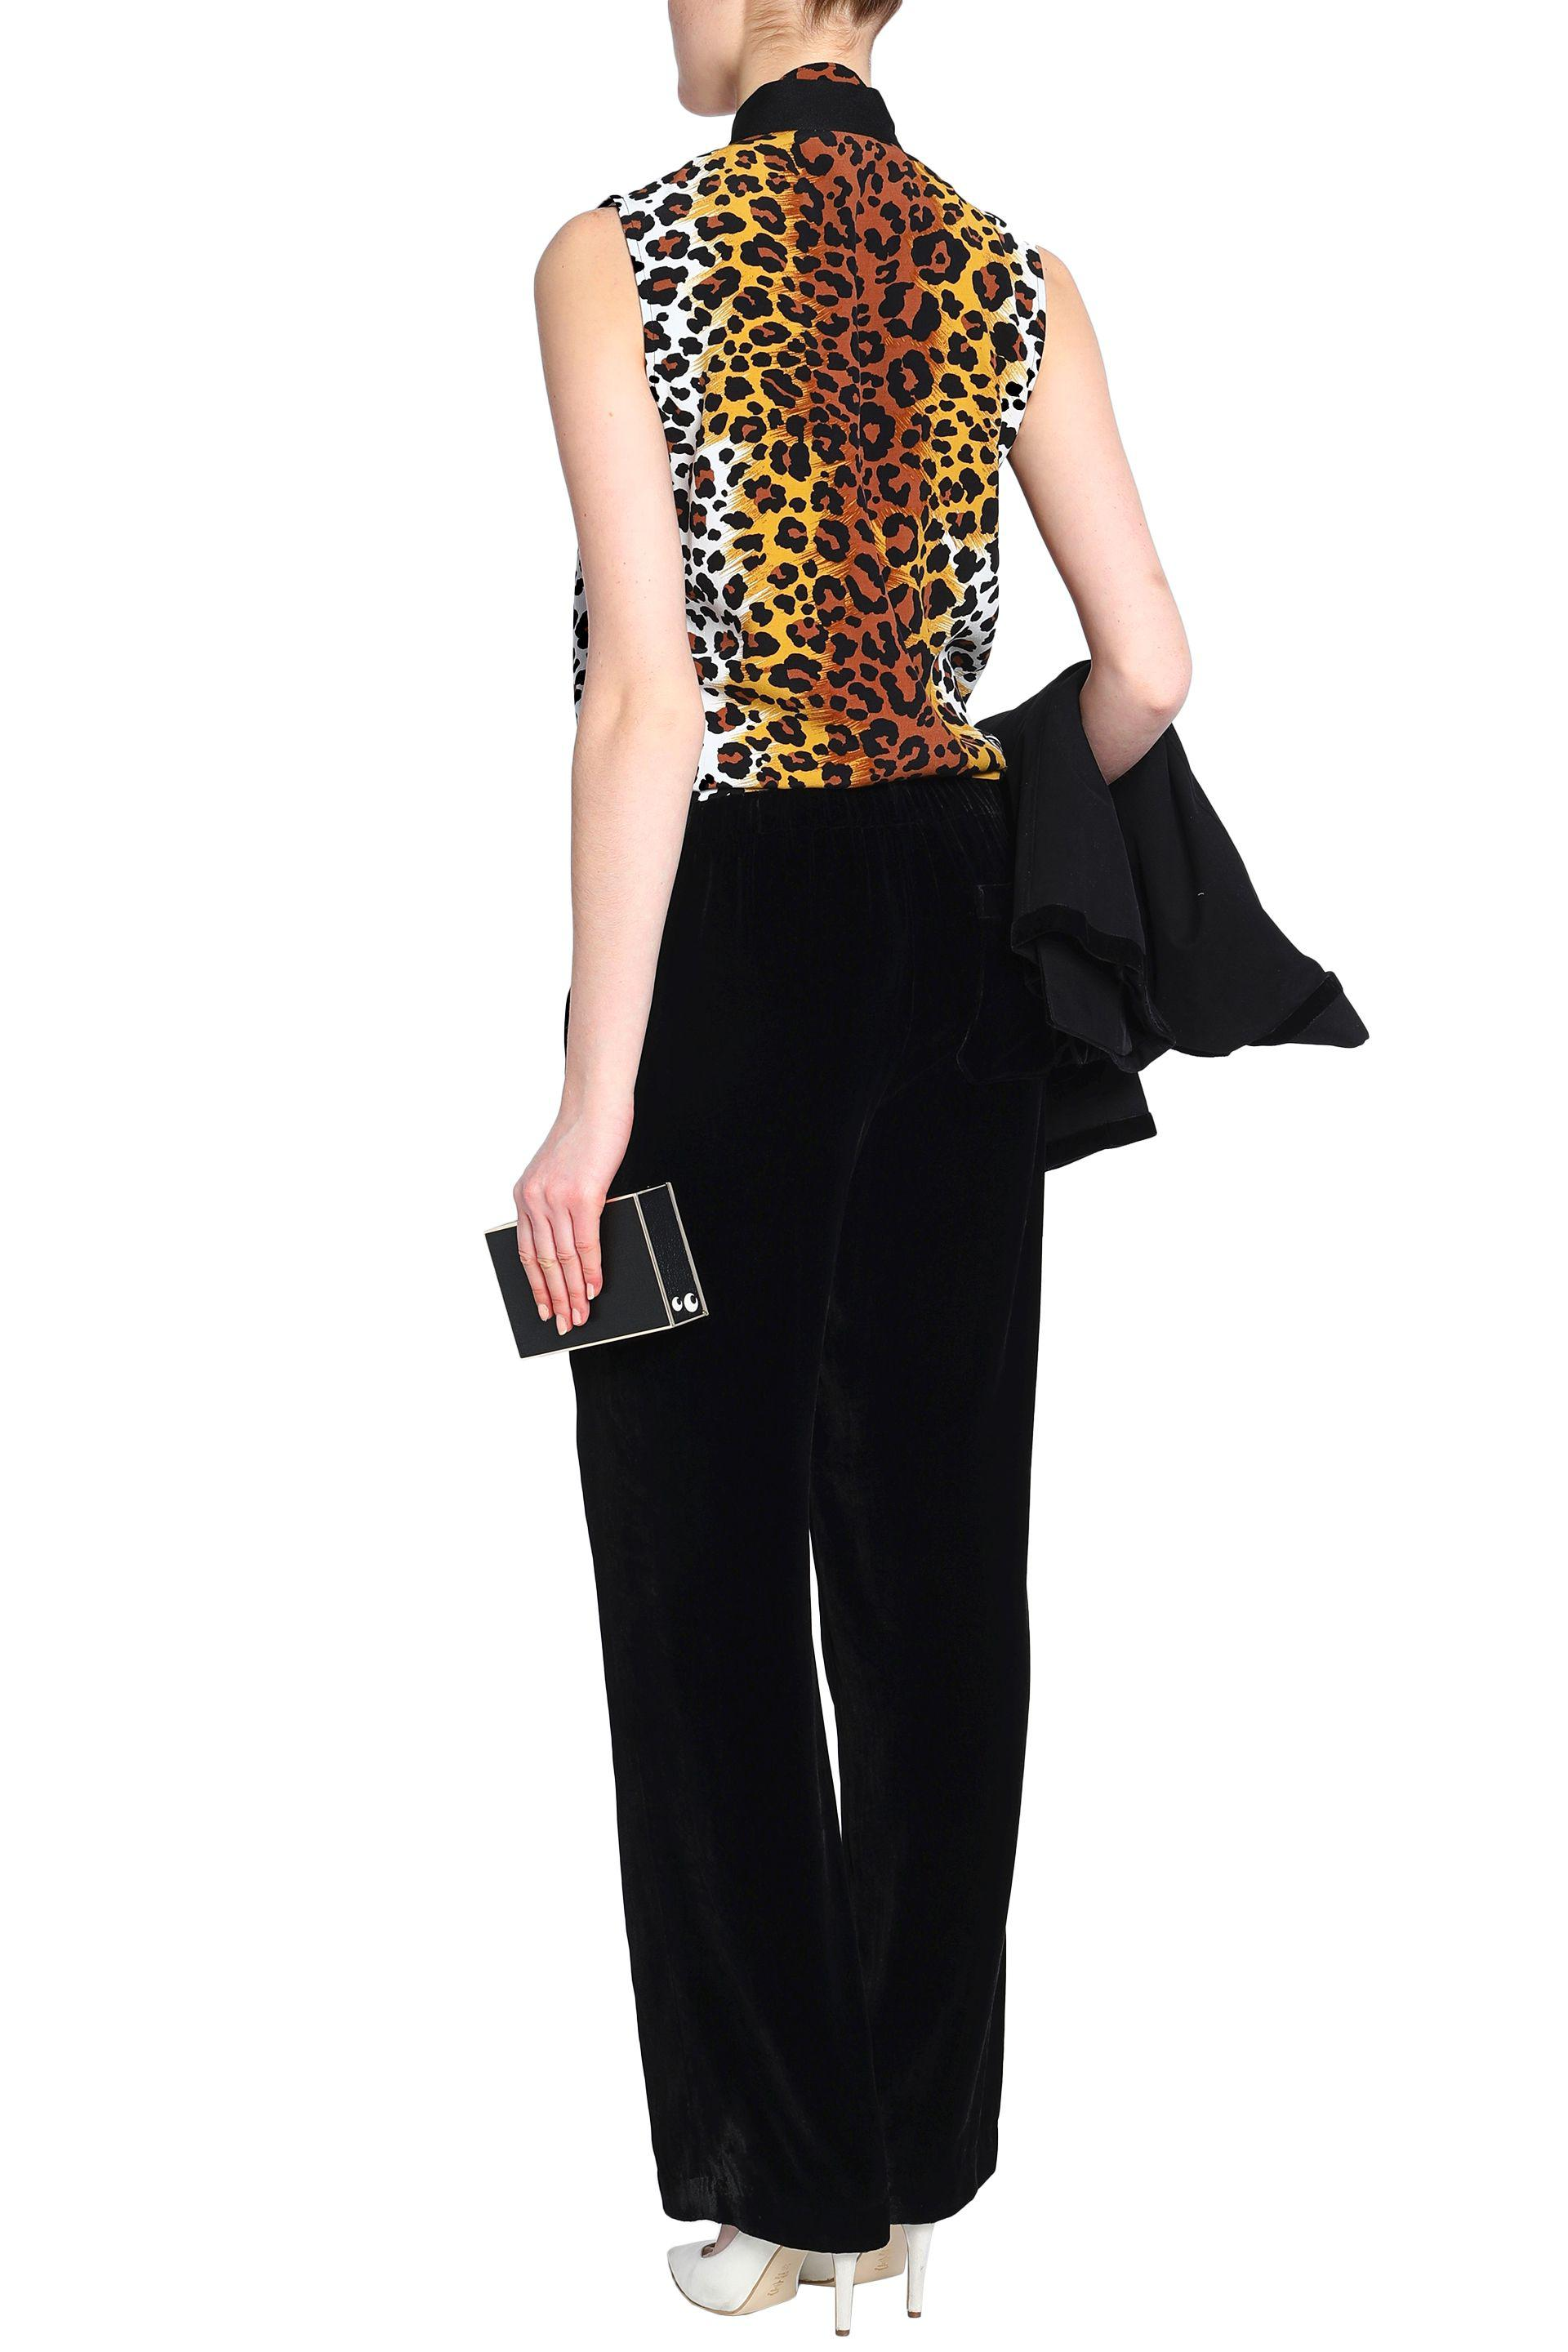 Love Moschino Woman Pussy-bow Leopard-print Crepe Top Animal Print Size 46 Love Moschino Comfortable Cheap Price Cheap 2018 New Deals Cheap Price lXeW5AaM1